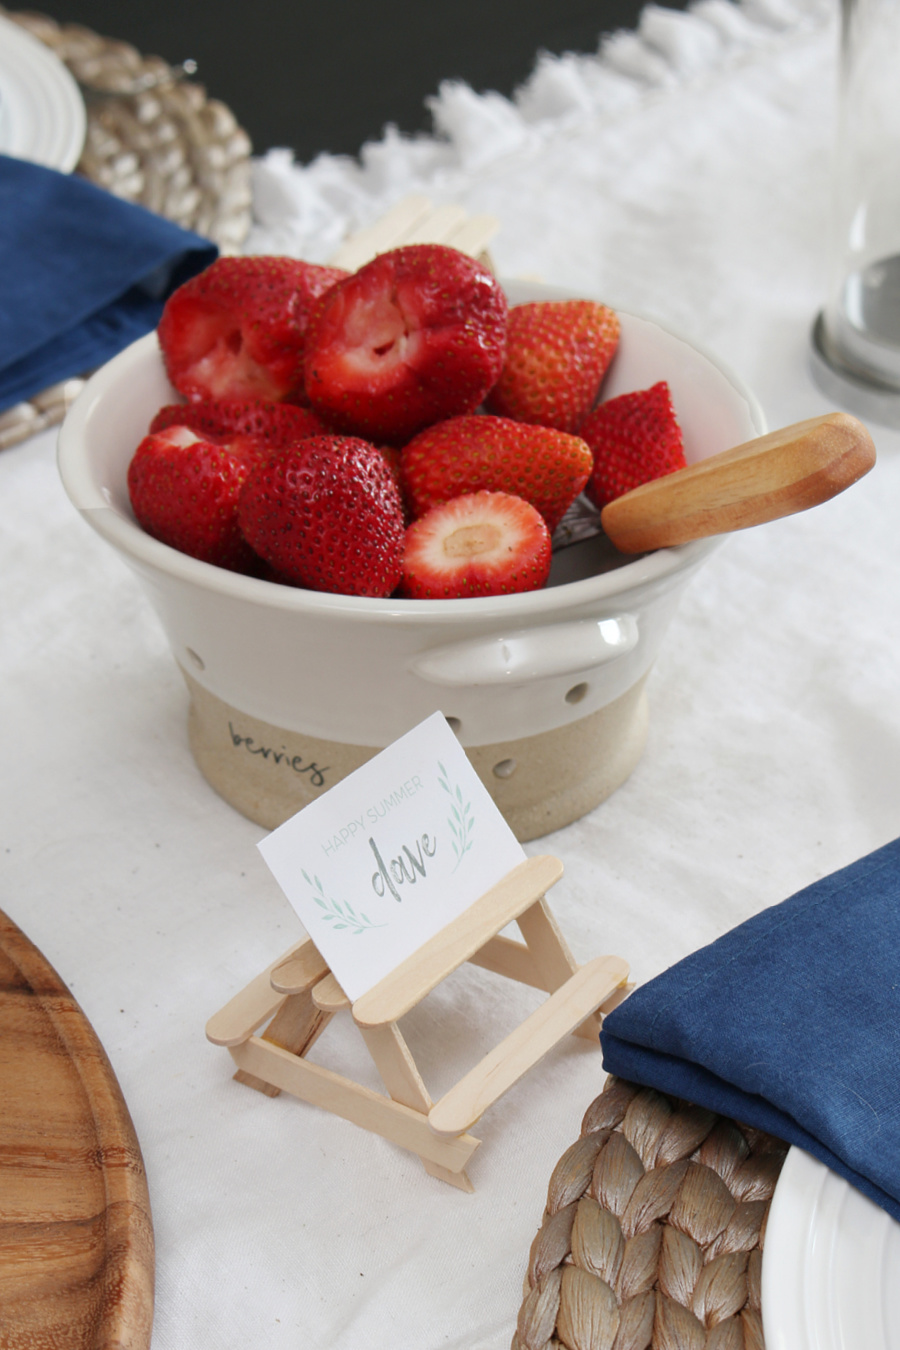 Cute popsicle stick picnic tables for food label holders.